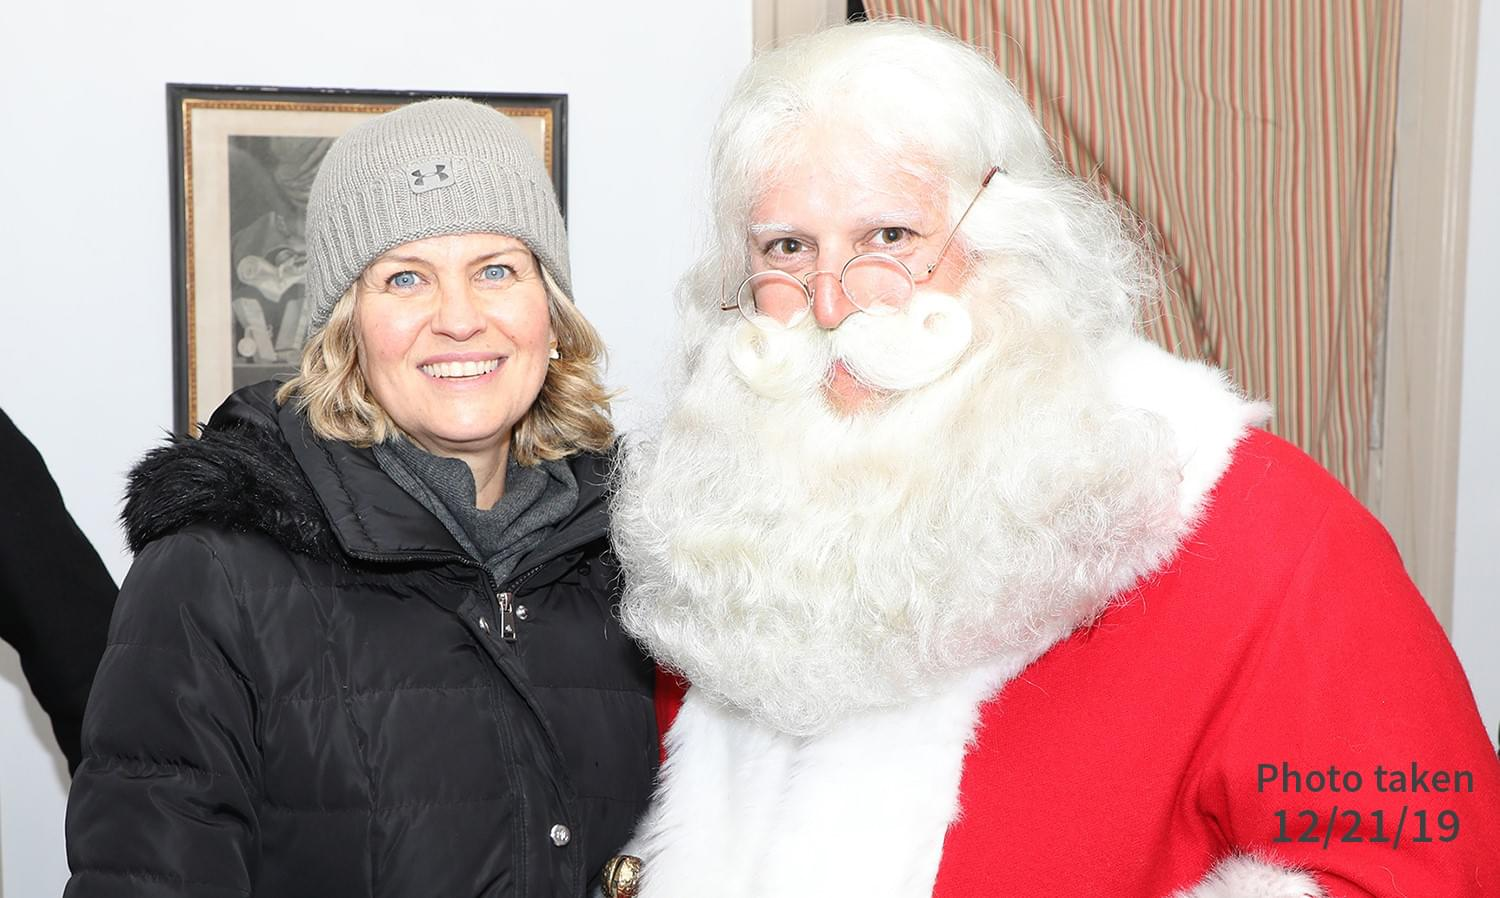 Mail your letters to Santa program returns to Nassau County